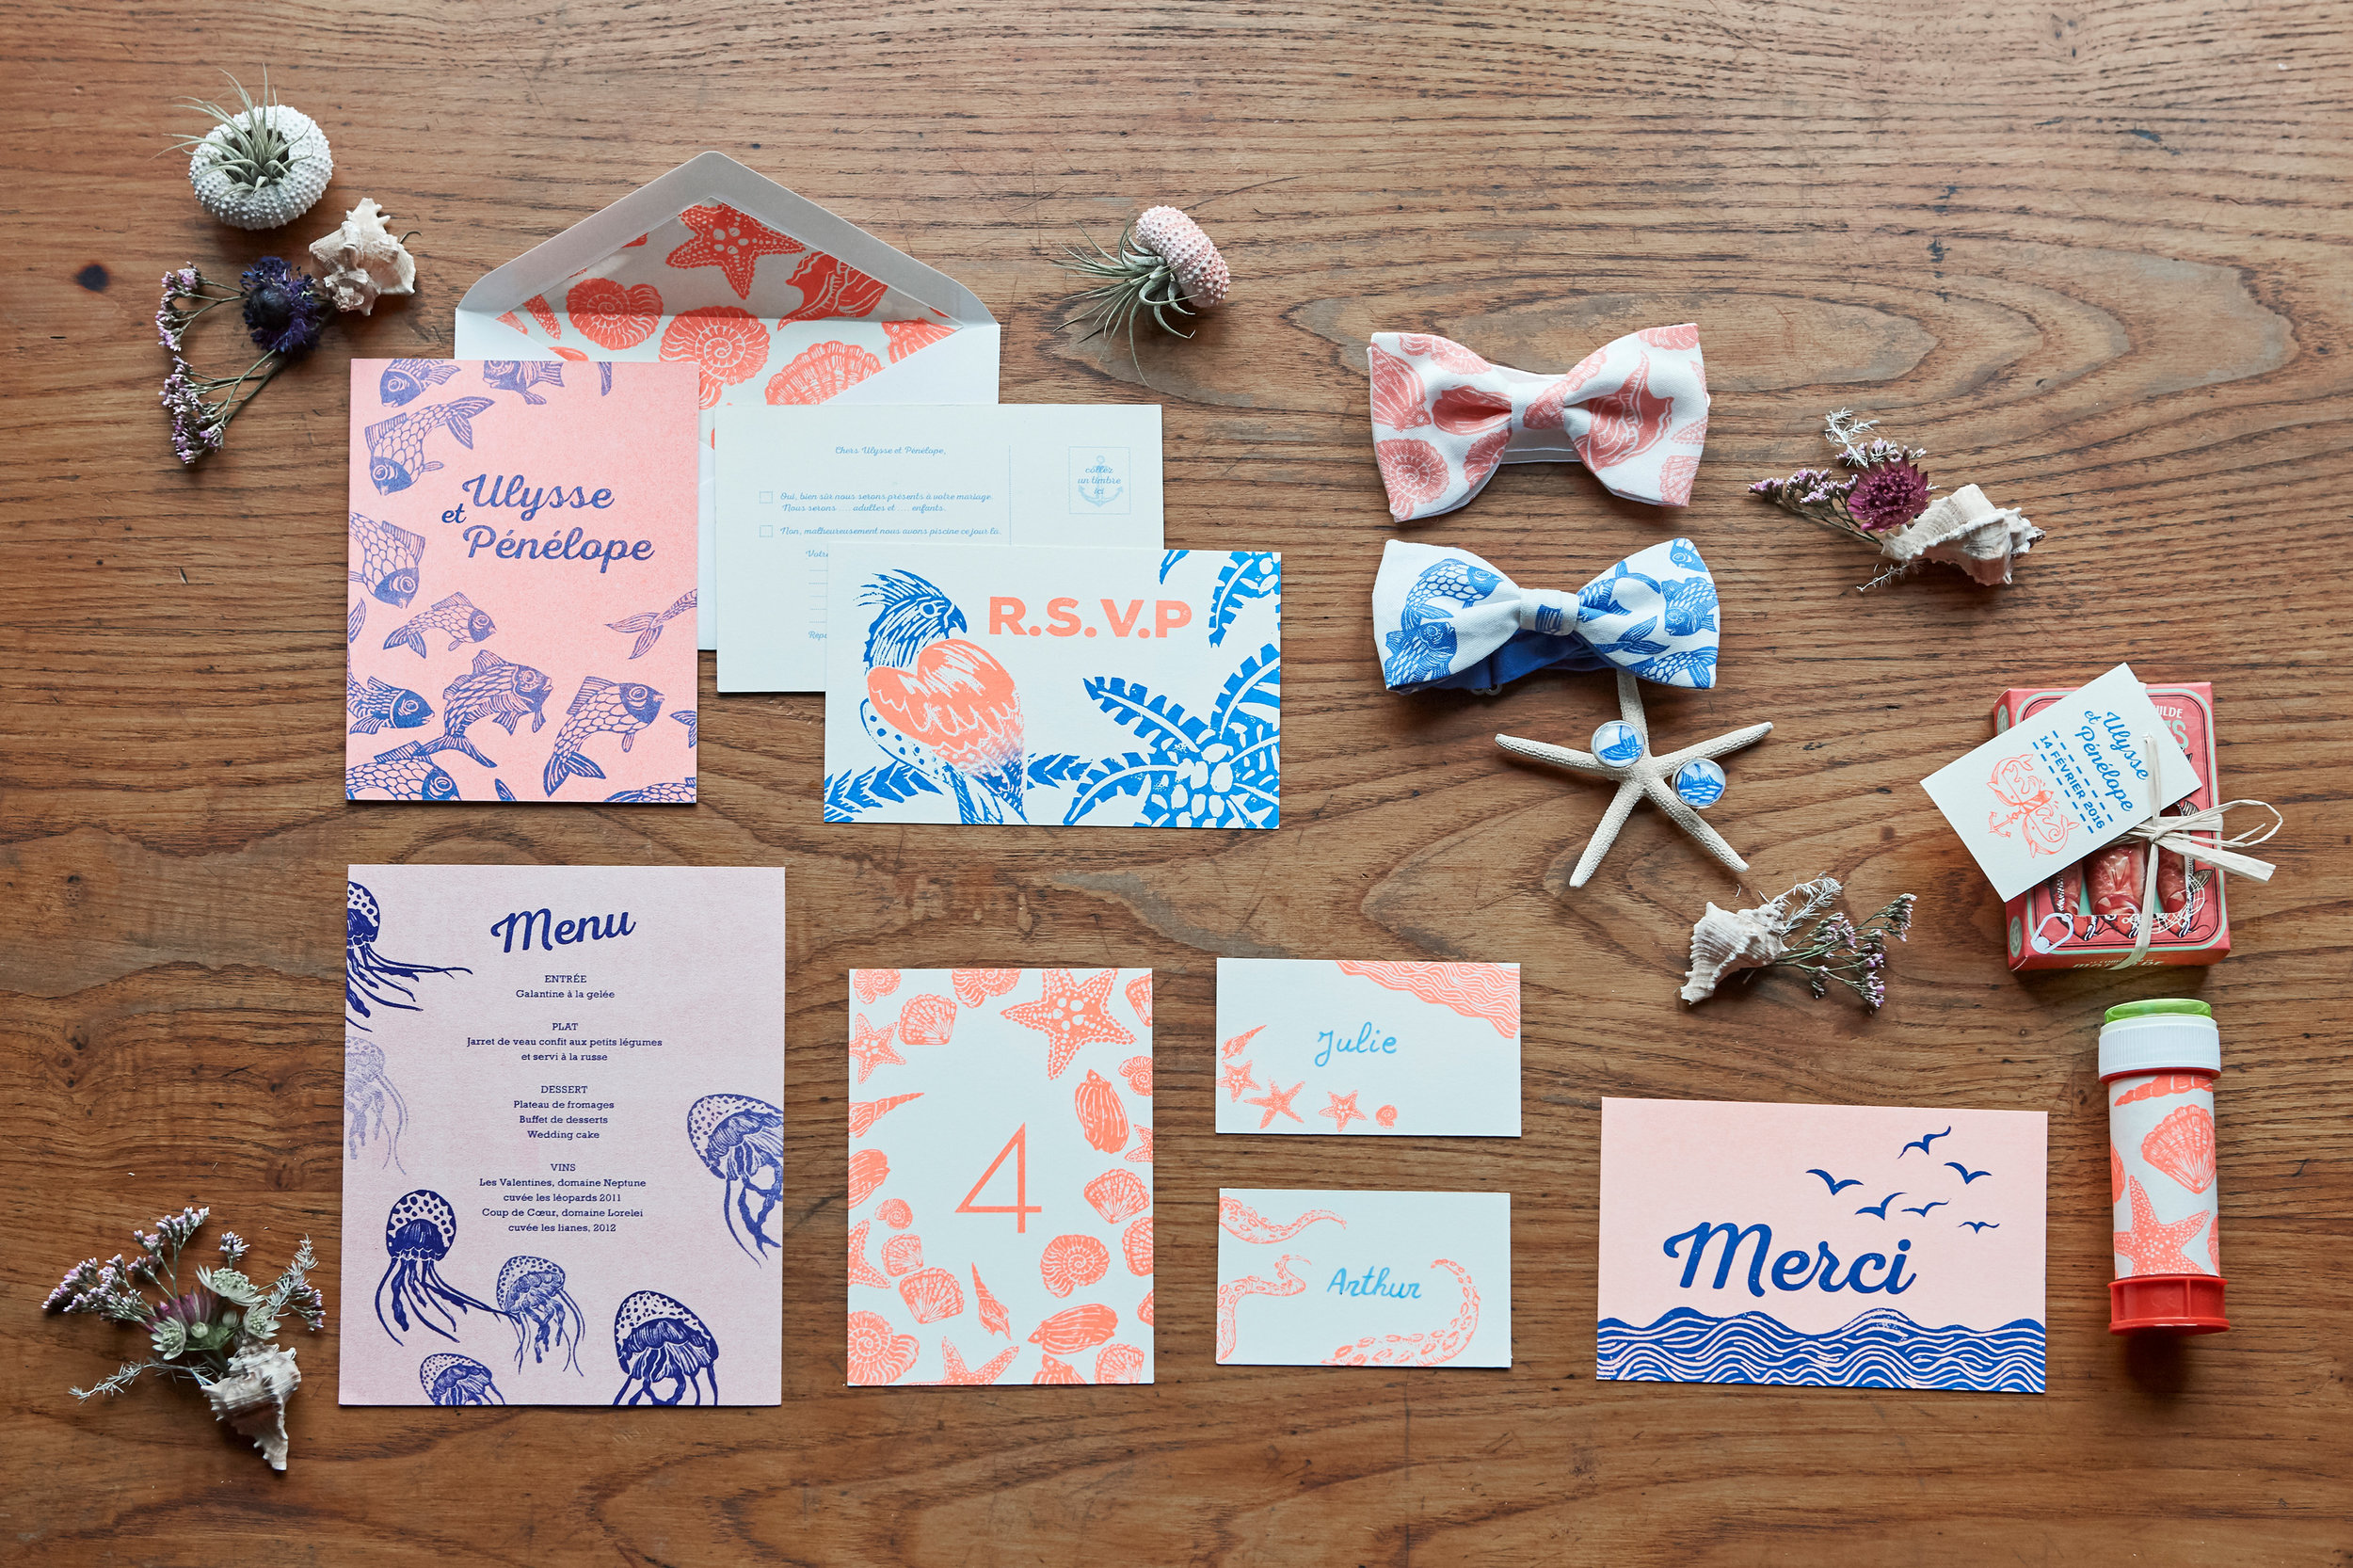 matching stationery and accessories, J&T and 2 Fois Oui, french normandy wedding